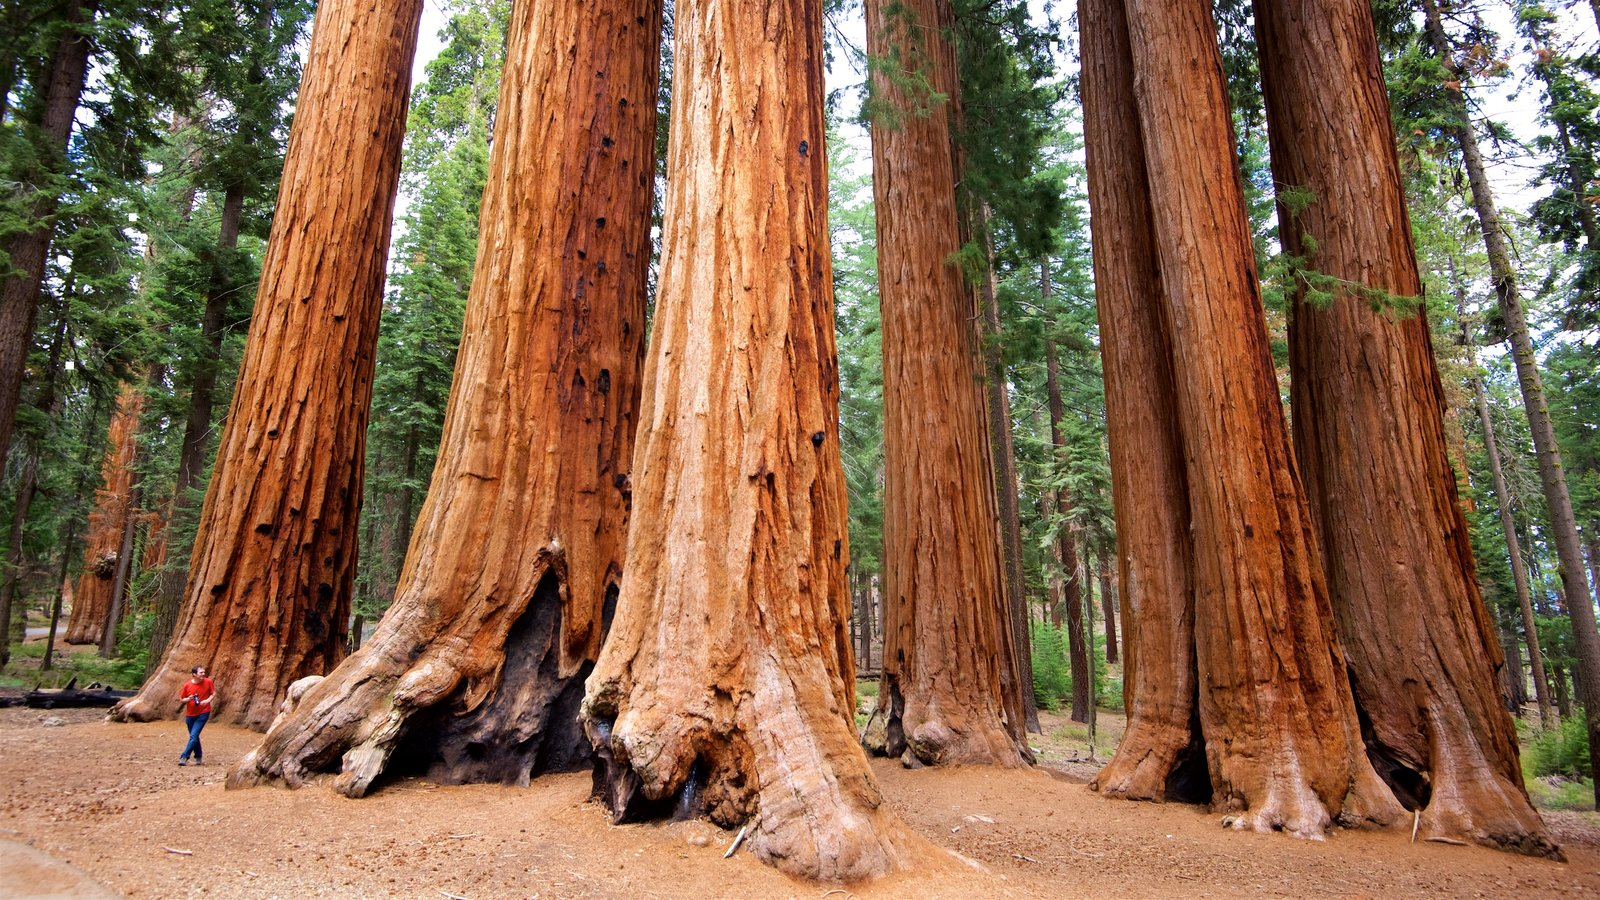 Kings Fall Wallpaper People Pictures View Images Of Sequoia National Park